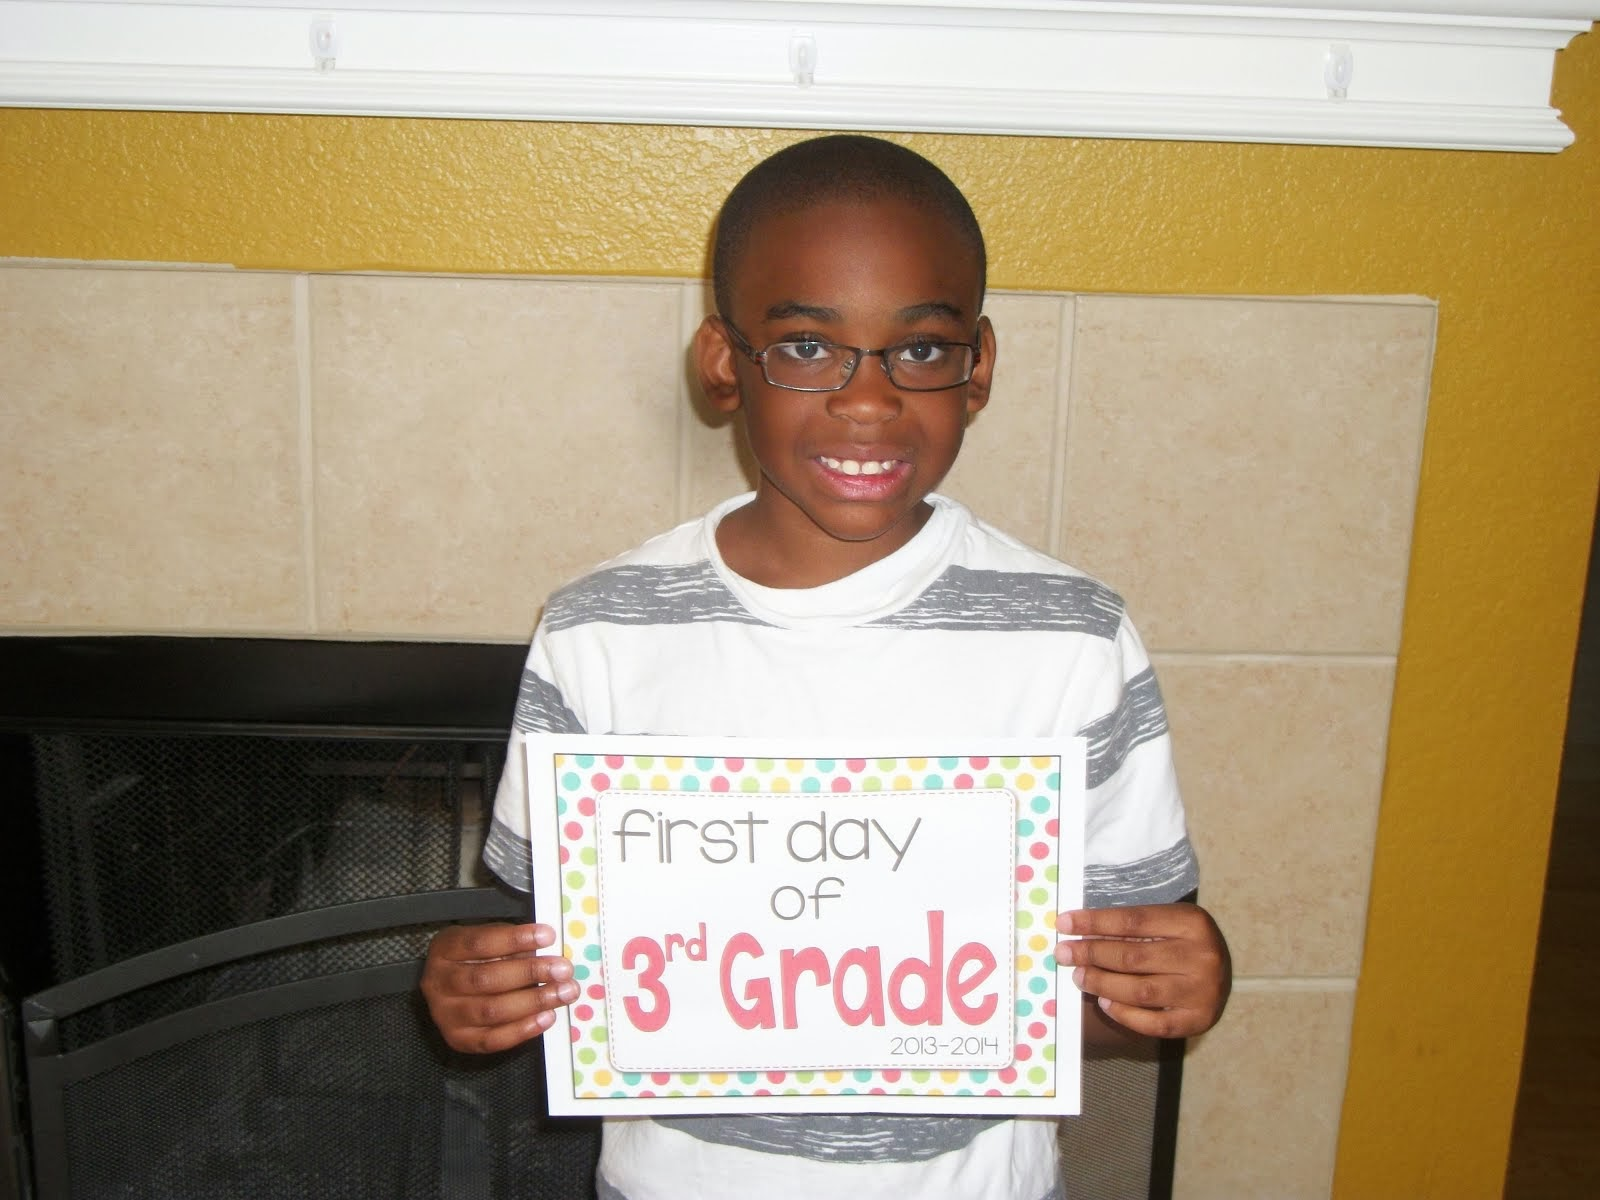 First Day of Third Grade 2013-2014